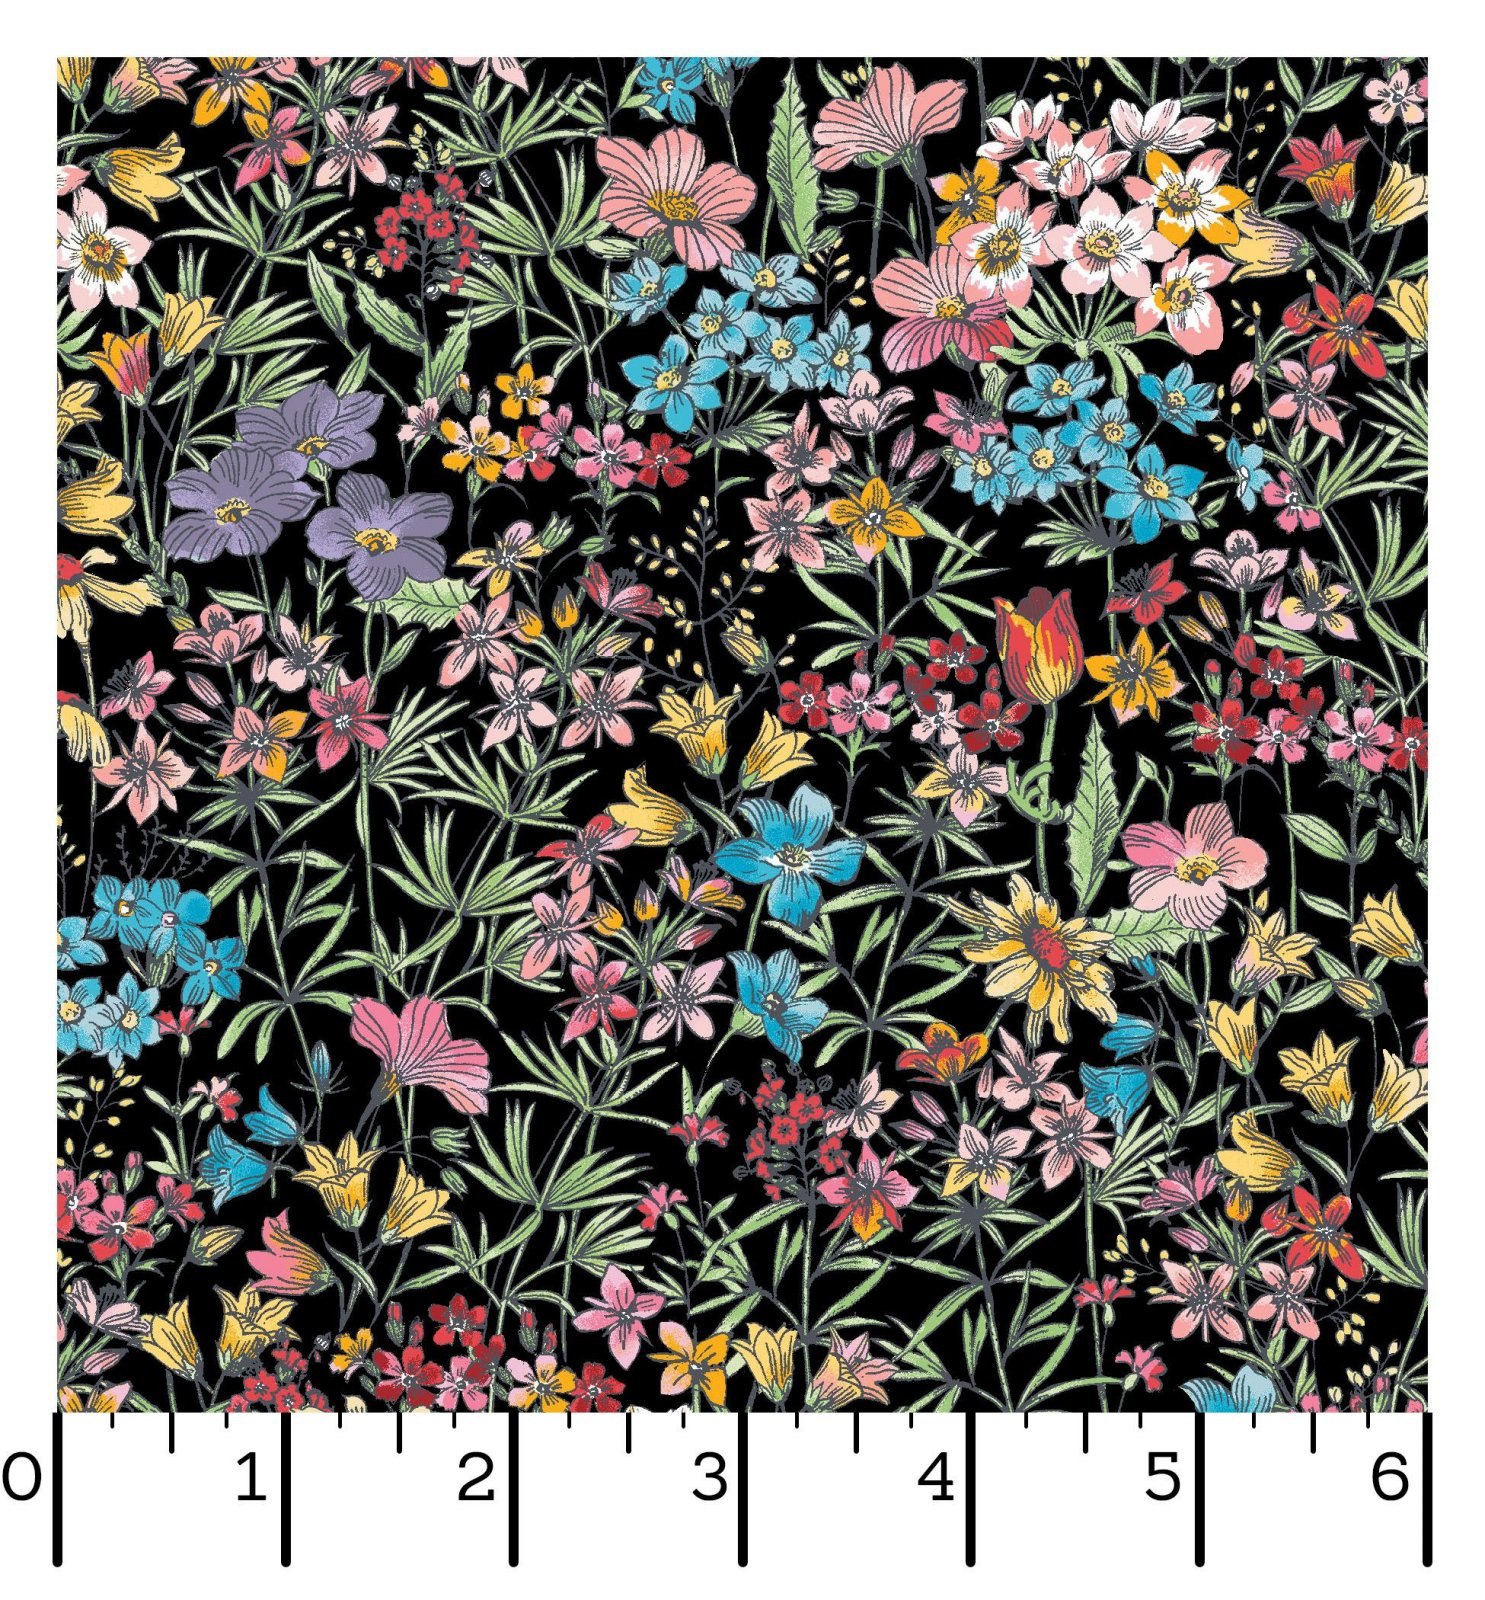 EESC-D10003 J - MEADOW EDGE BY MAYWOOD STUDIO SMALL PACKED FLOWER BLACK - ARRIVING IN MAY 2021